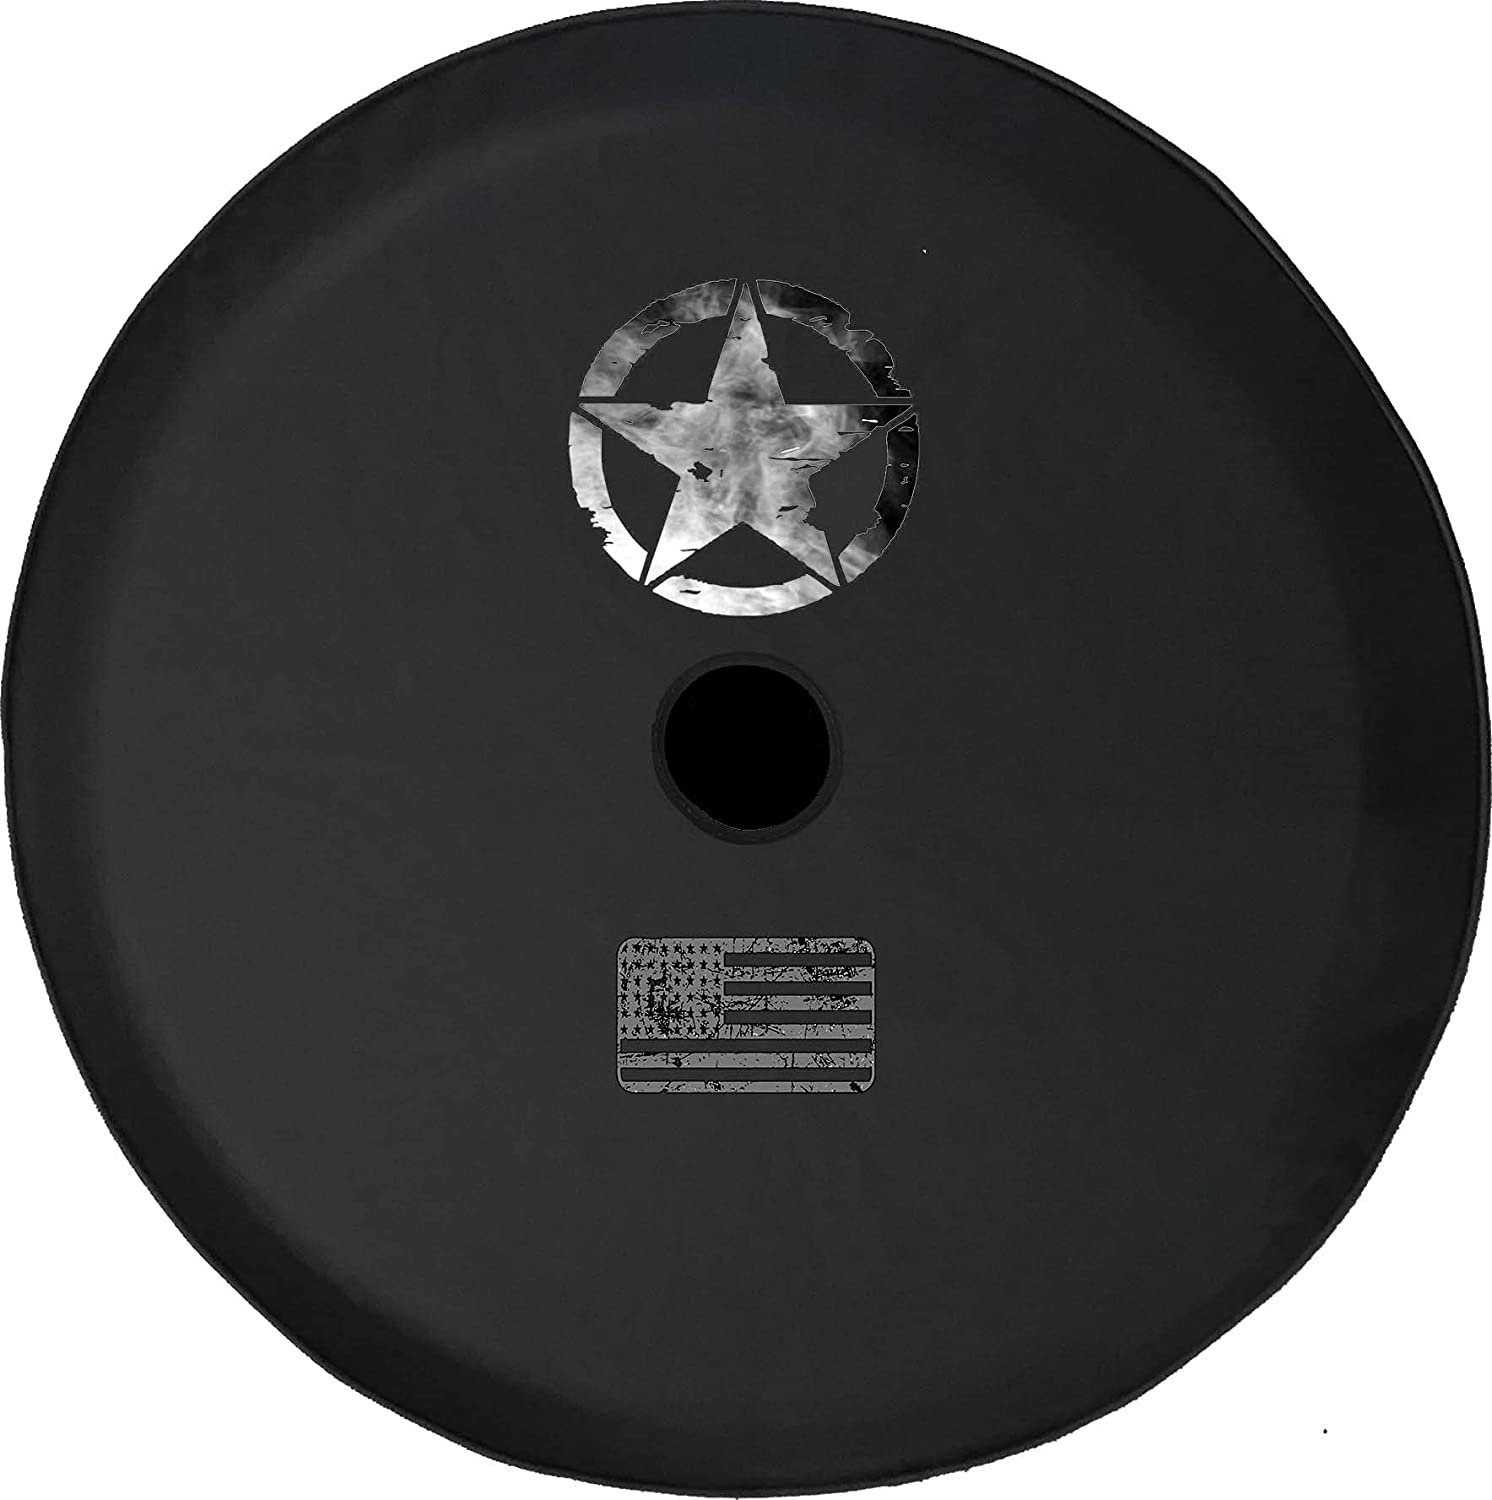 JL Spare Tire Cover Oscar Rapid rise Mike SilverWh Star Dark Smoke Military National uniform free shipping